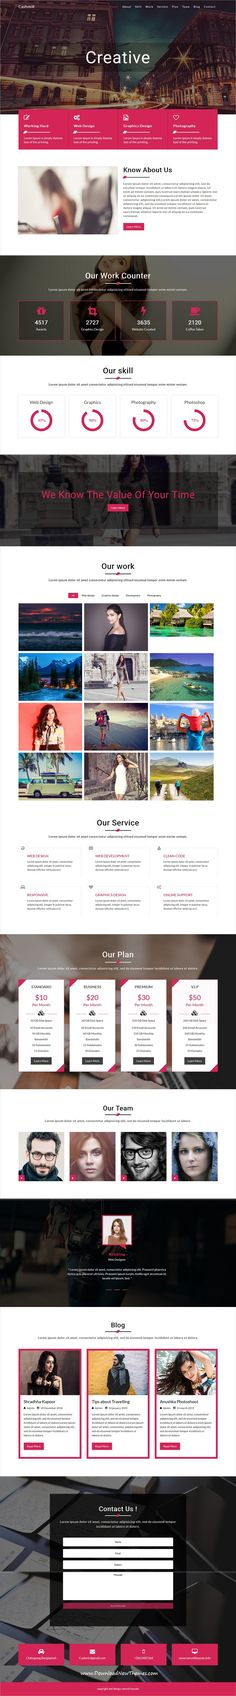 Cashmir is clean and modern design 4in1 responsive #bootstrap HTML template for creative #designer, developer, photographers and agencies #website to live preview & download click on image or Visit